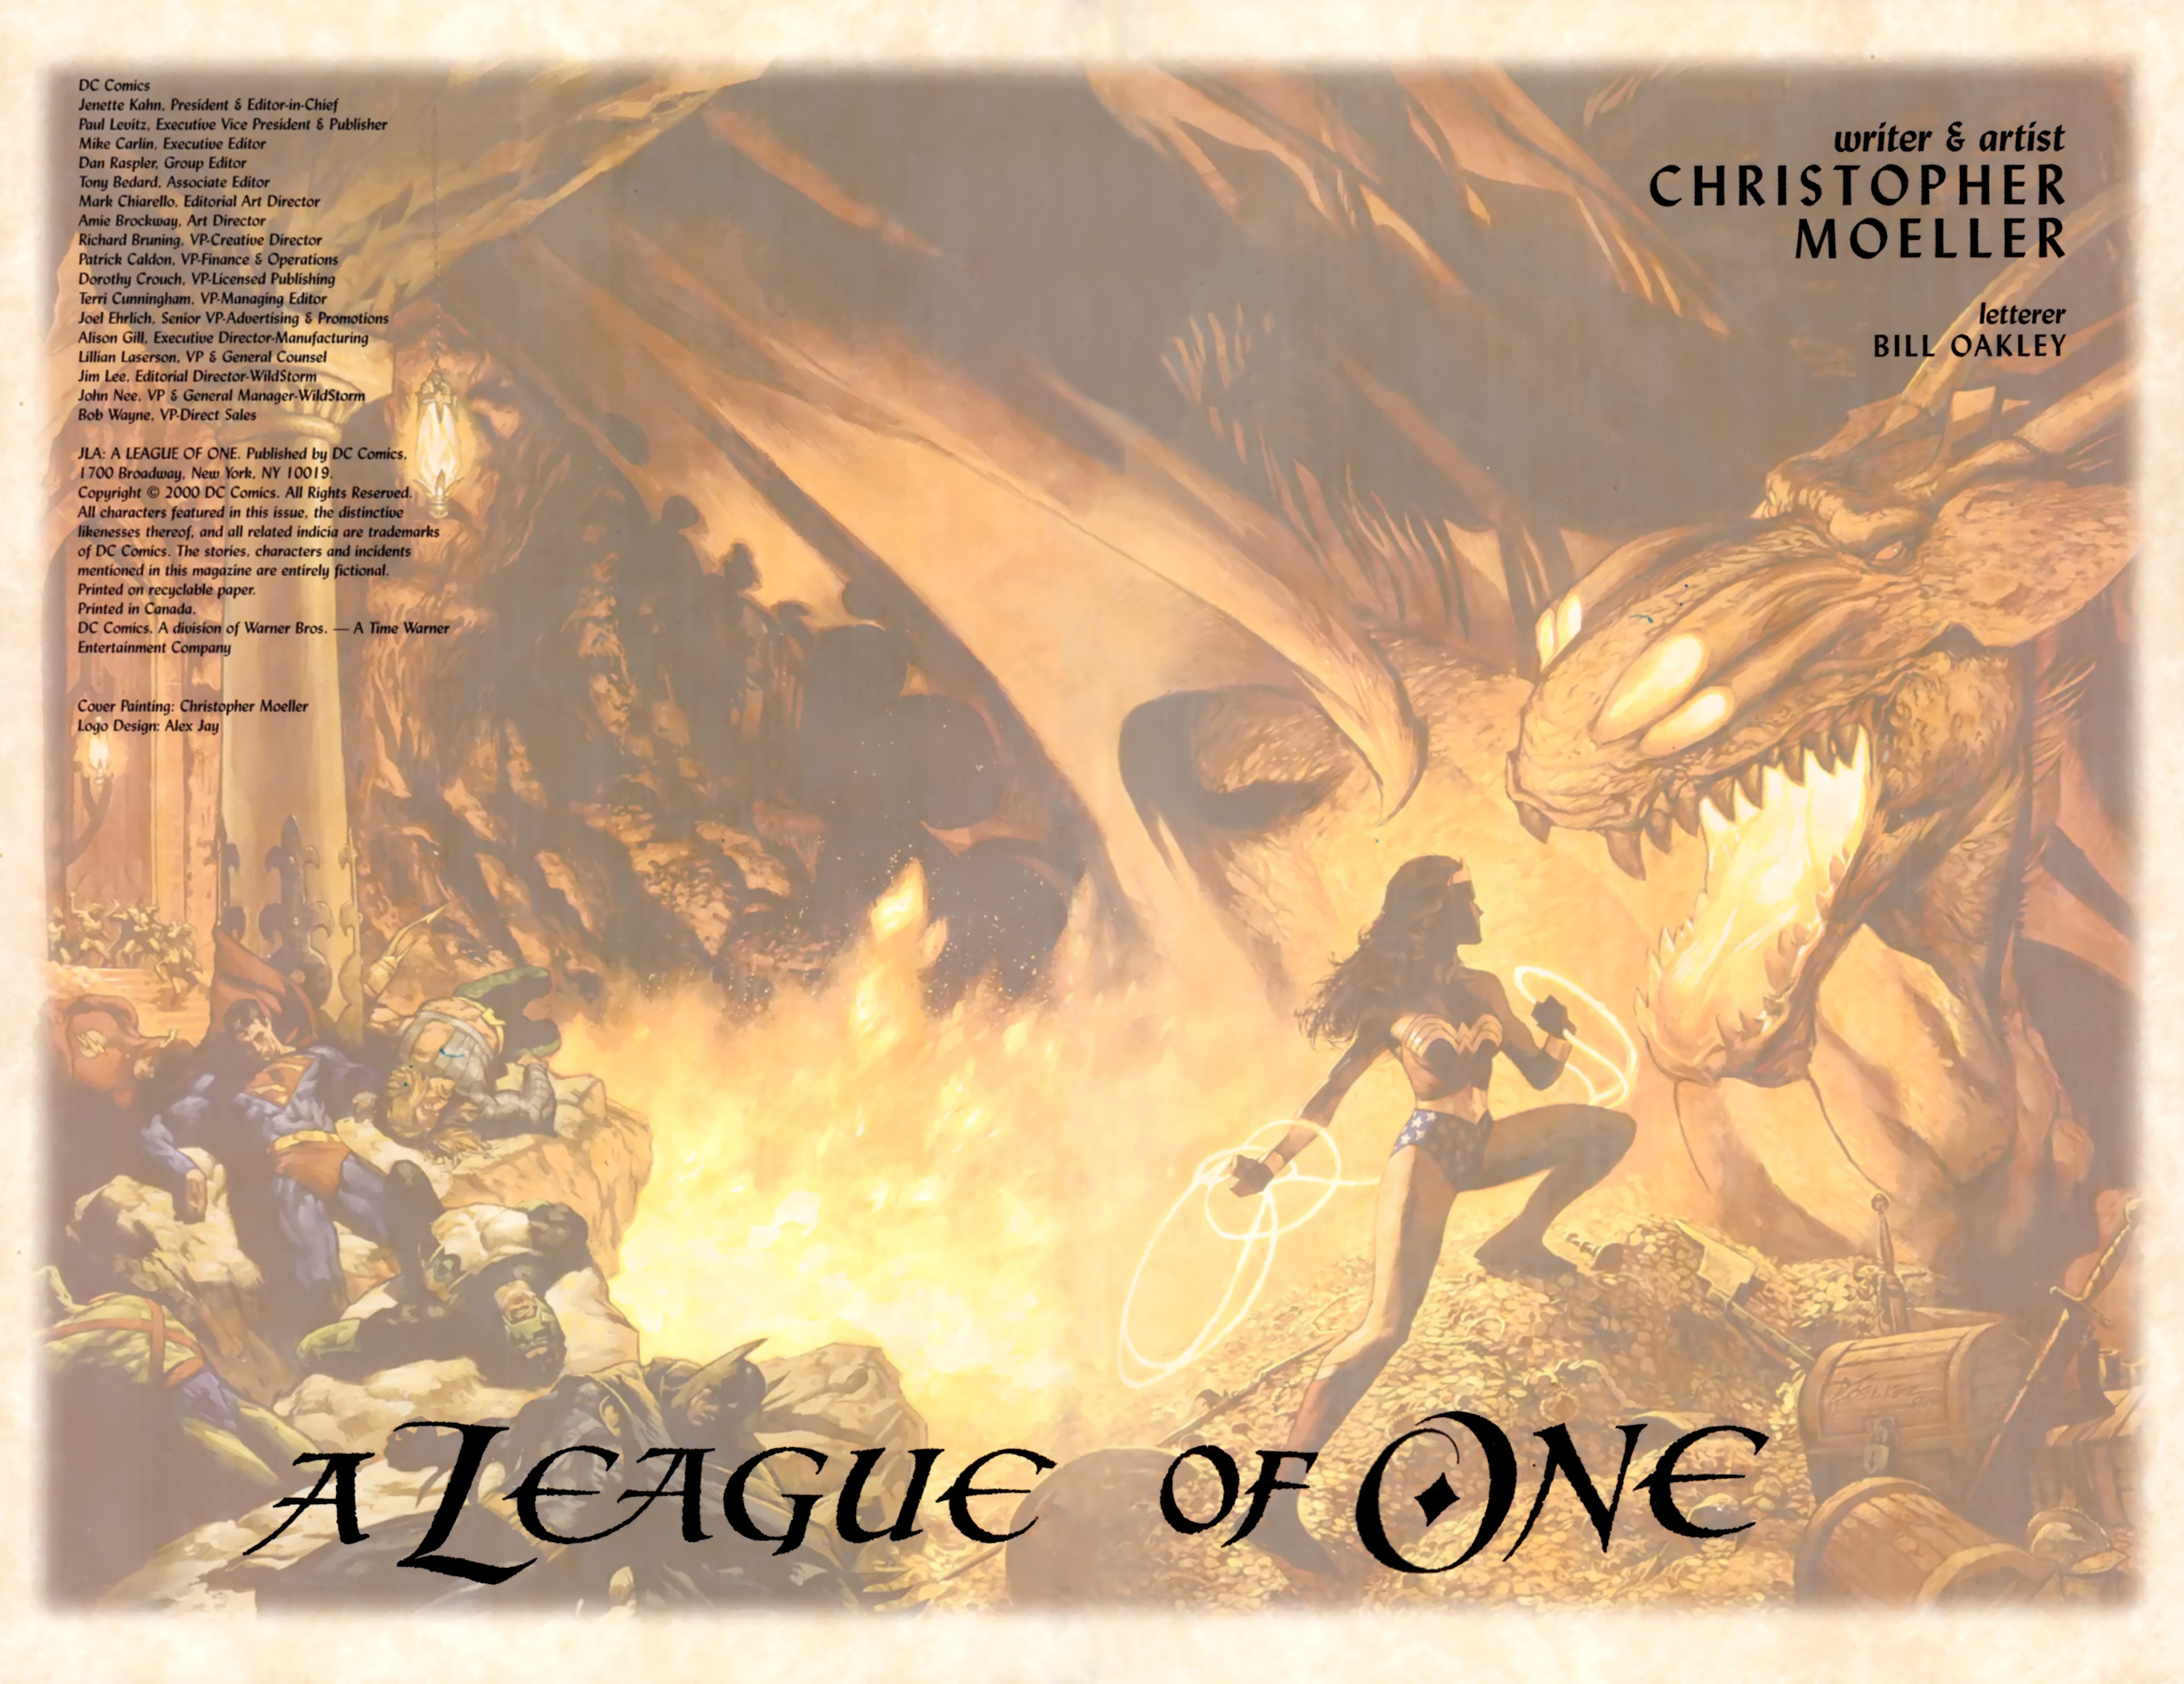 Read online JLA: A League of One comic -  Issue # Full - 6